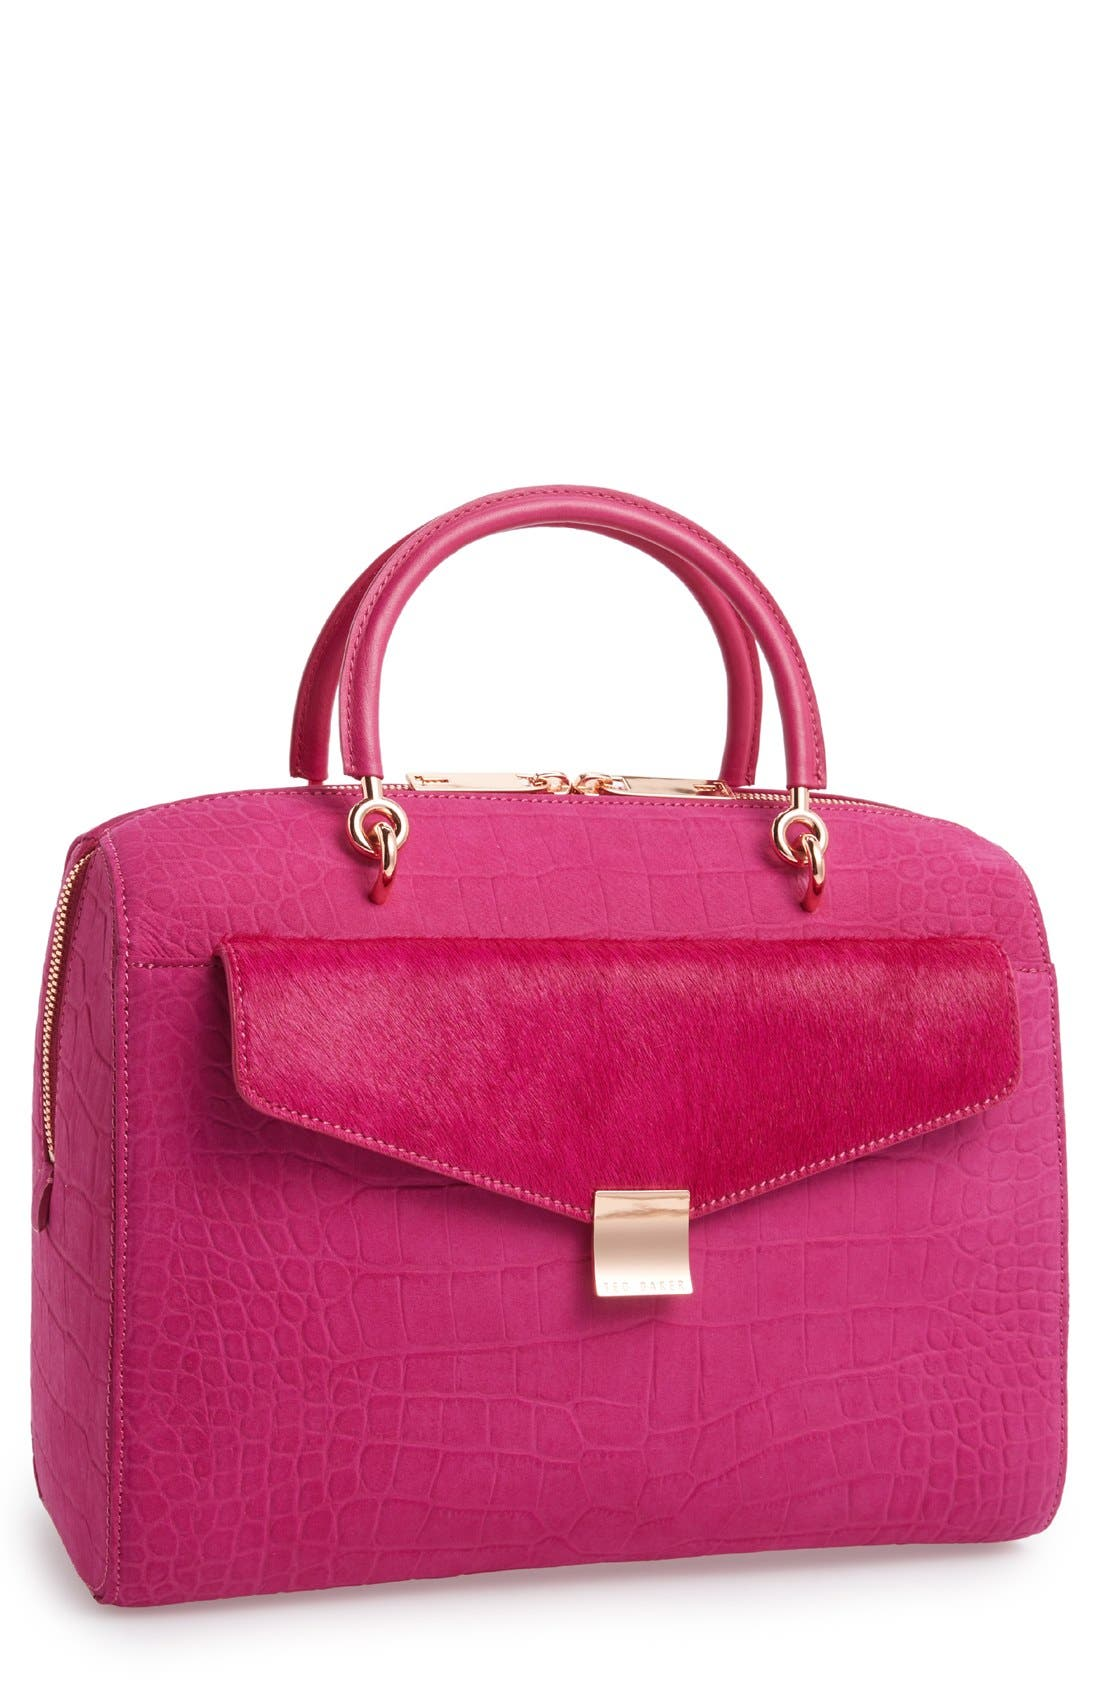 Alternate Image 1 Selected - Ted Baker London 'Alexia' Removable Clutch Embossed Bowler Bag